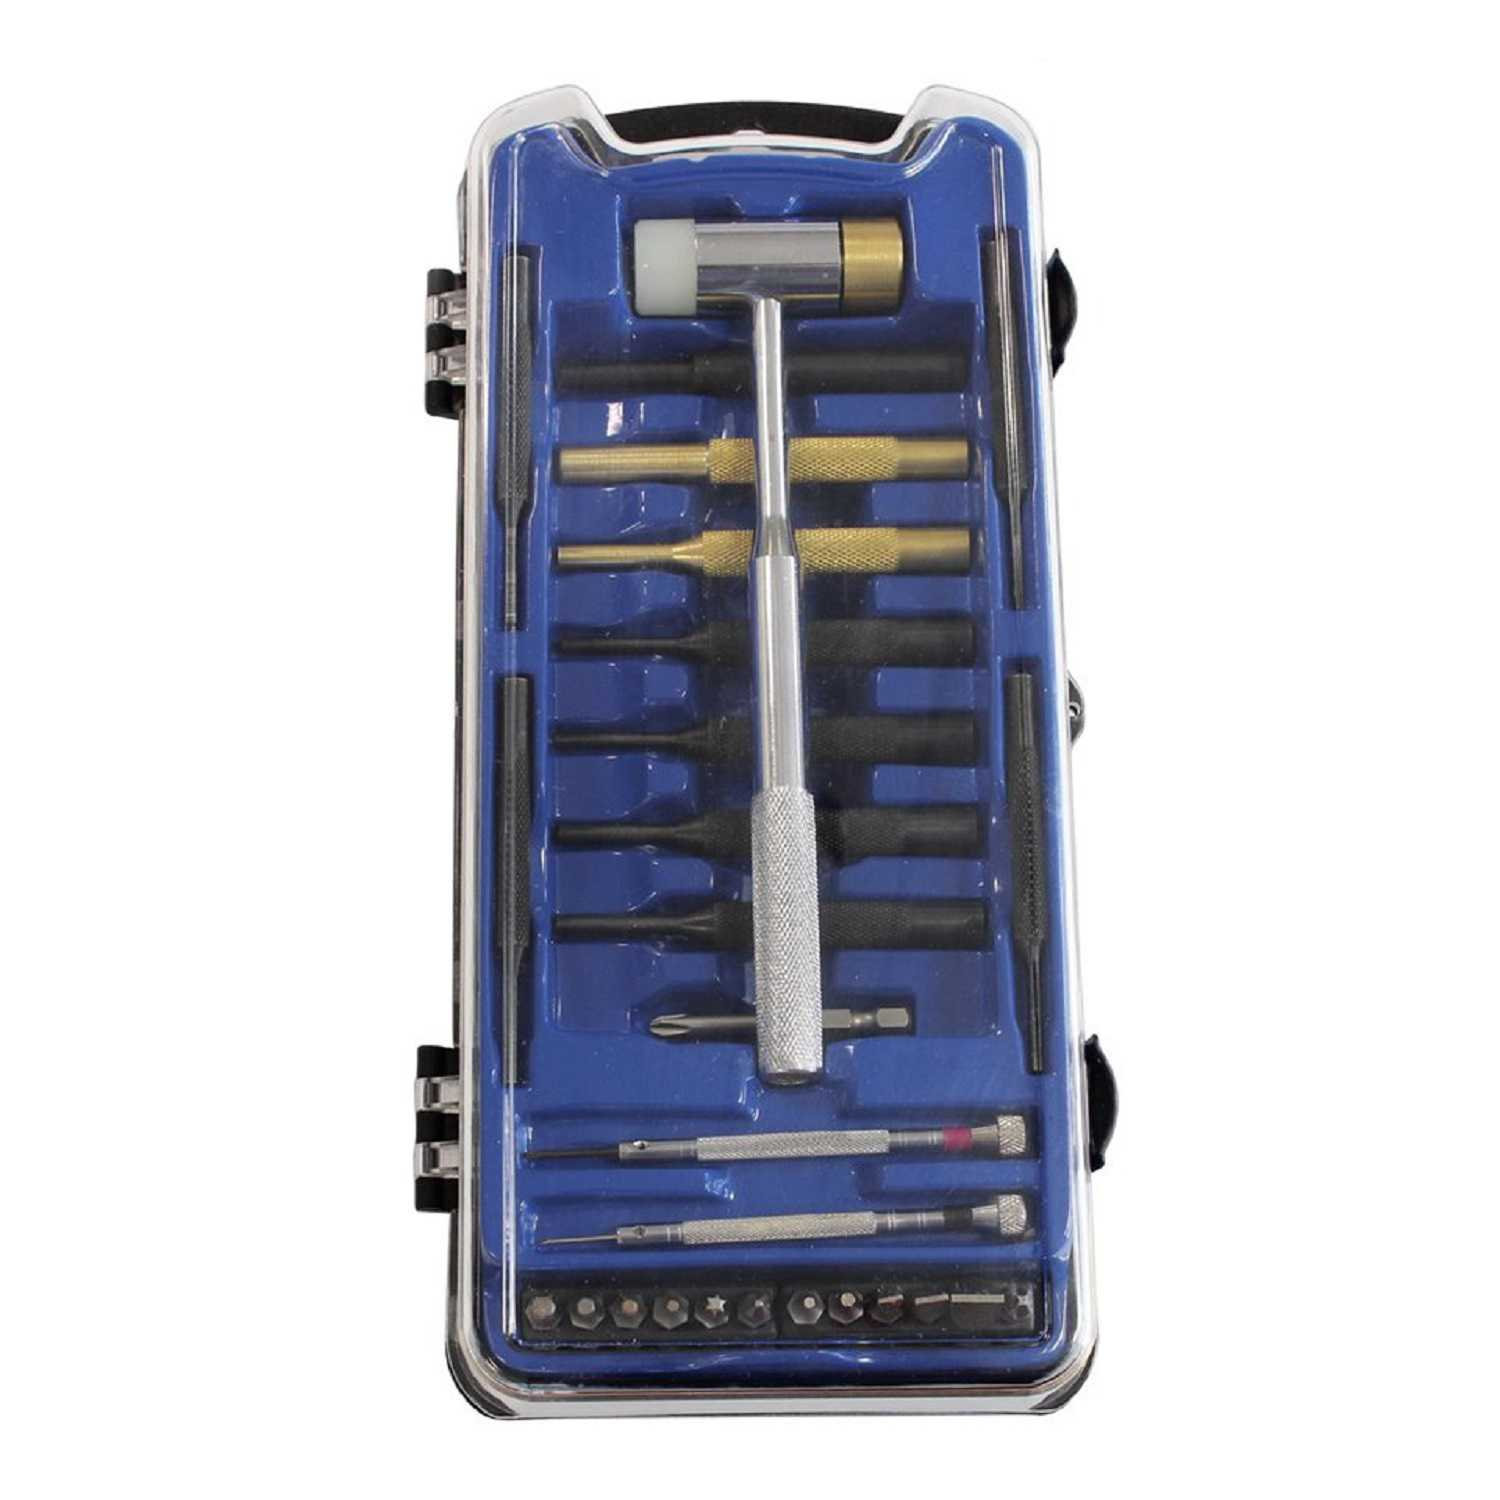 Birchwood Casey Weekender Professional Gunsmith Kit 27 Tools